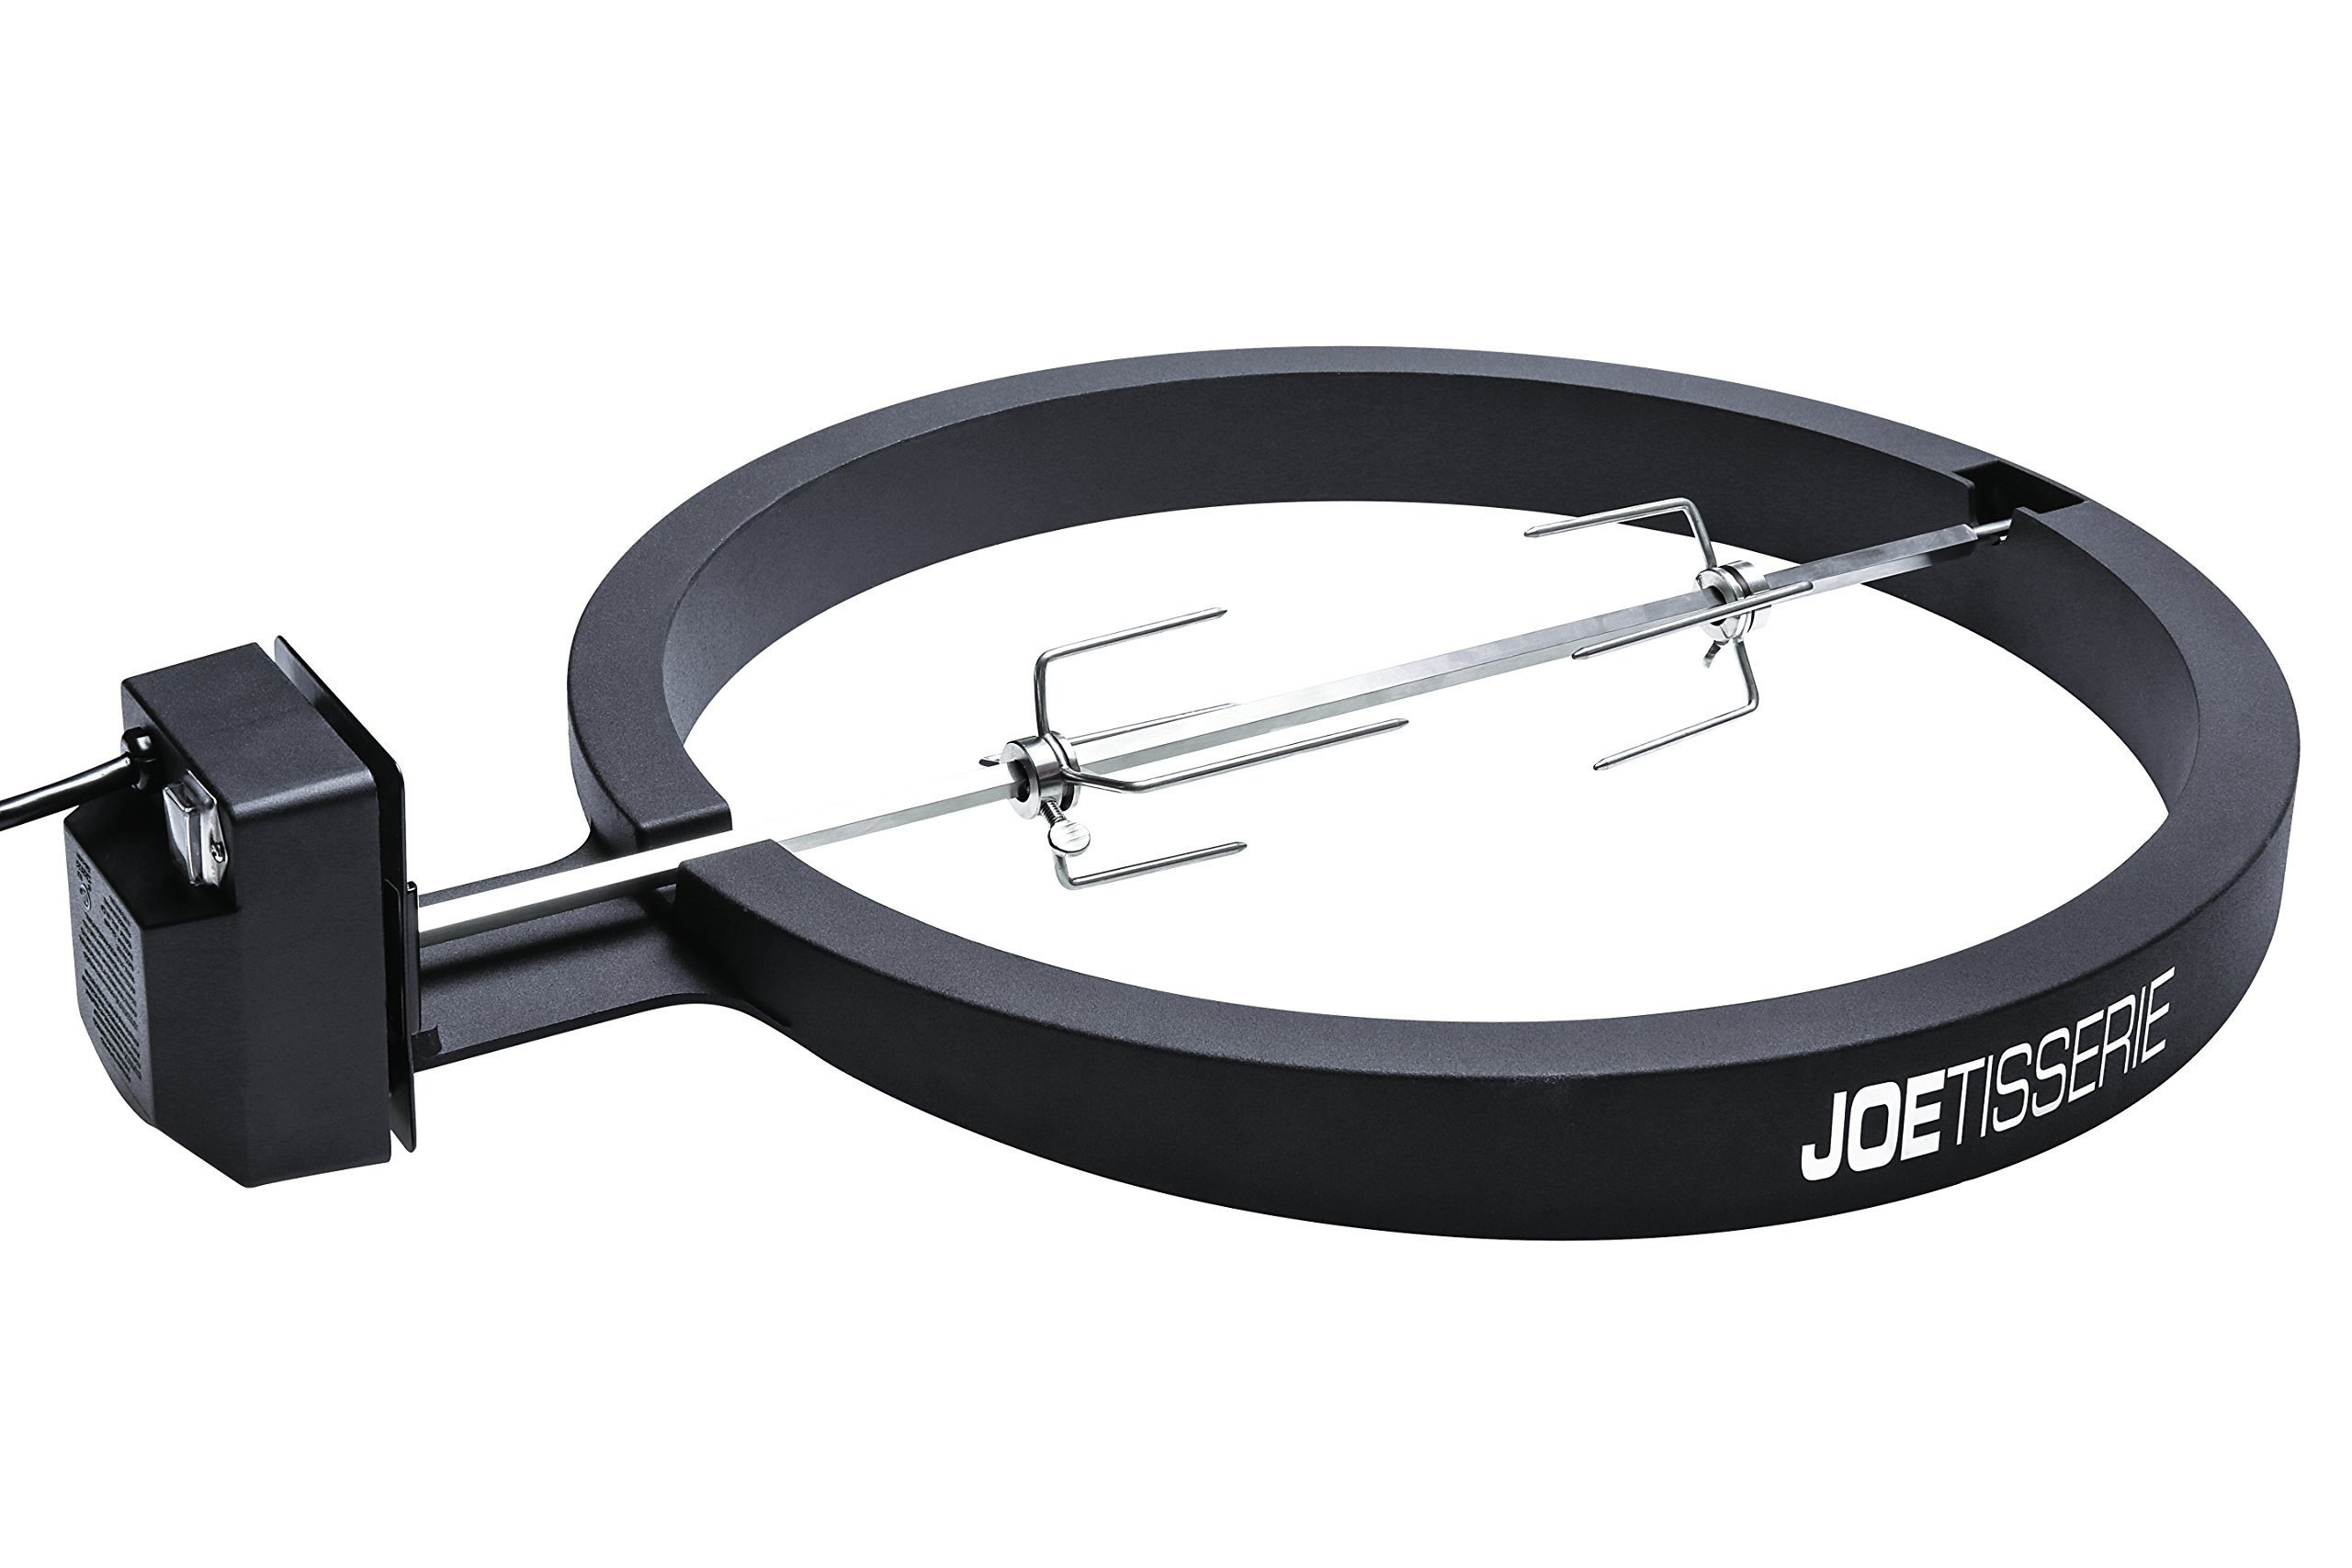 Kamado Joe JoeTisserie, One Size, Black